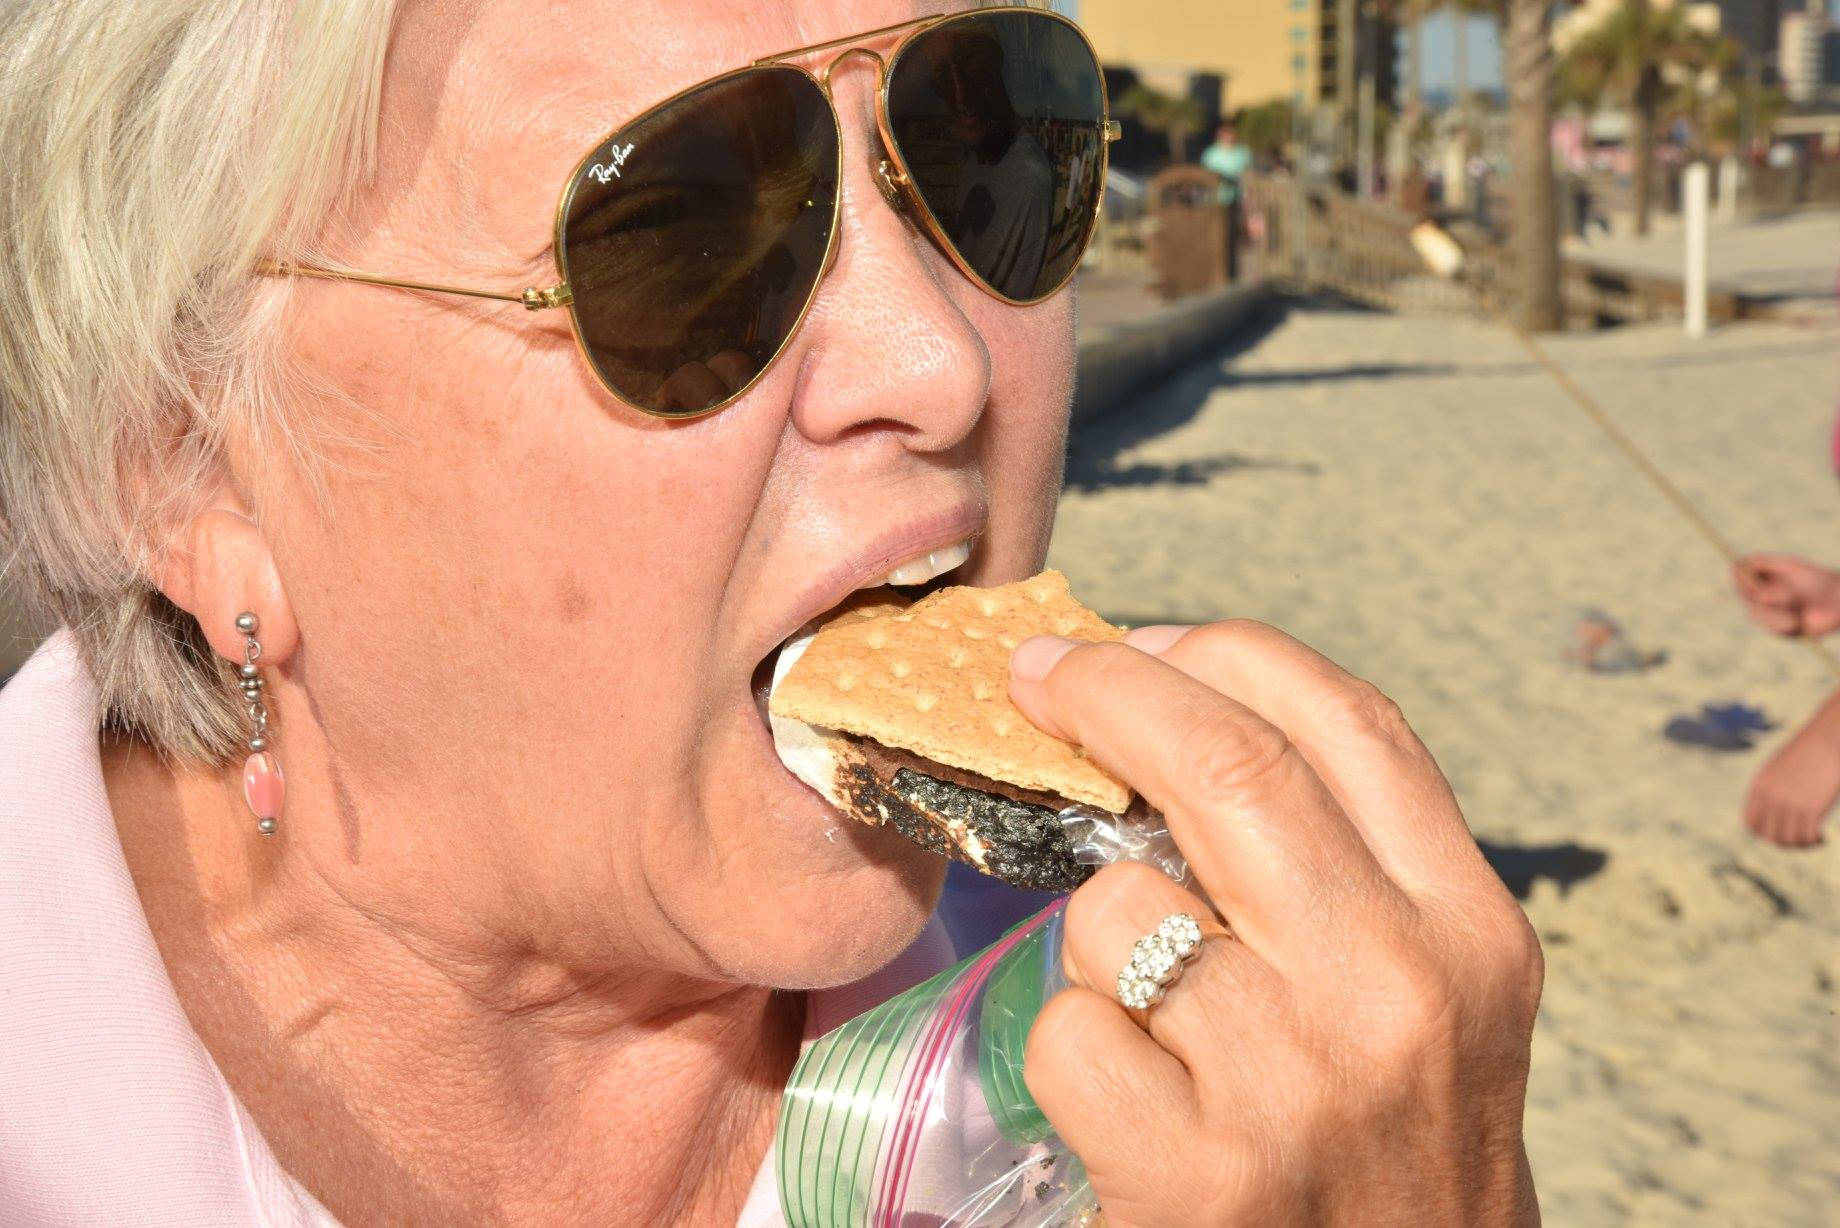 woman eating a smore